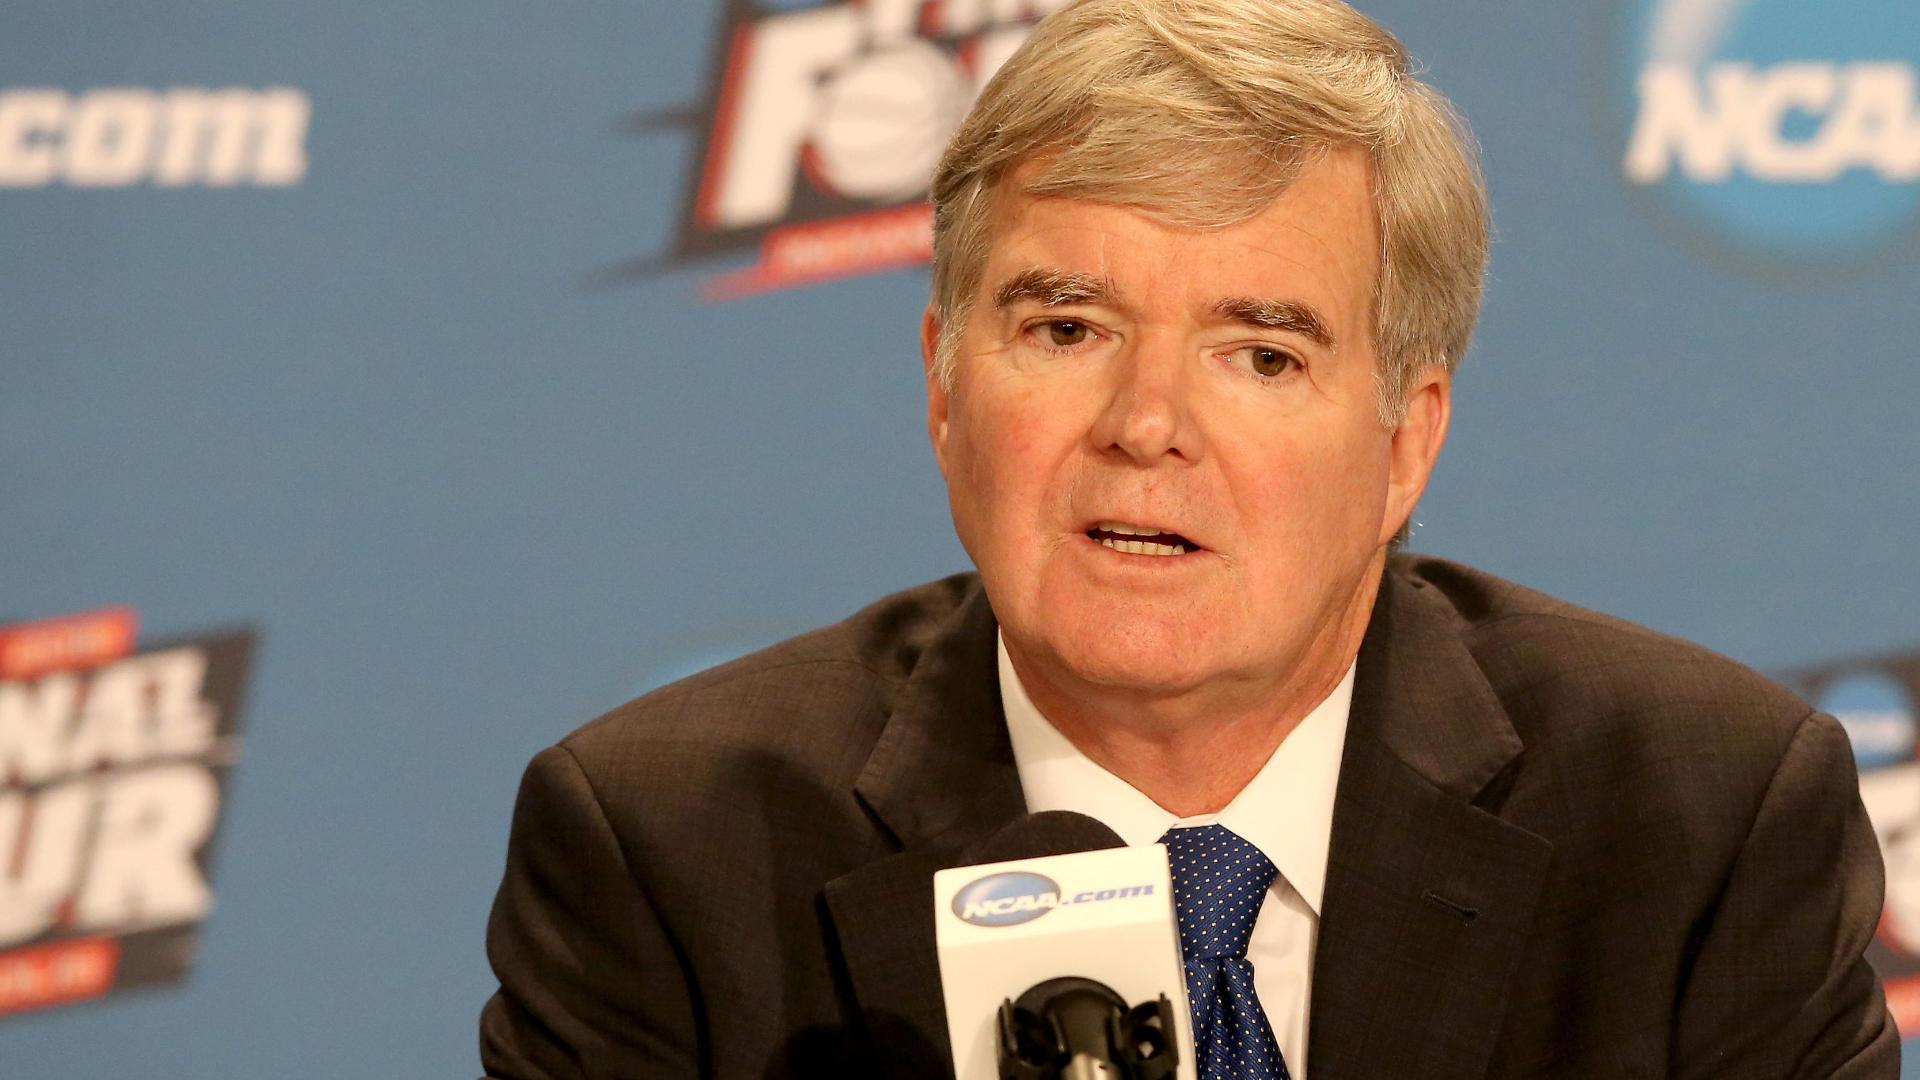 http://a.espncdn.com/media/motion/2015/0404/dm_150402_ncb_mark_emmert_interview1184/dm_150402_ncb_mark_emmert_interview1184.jpg